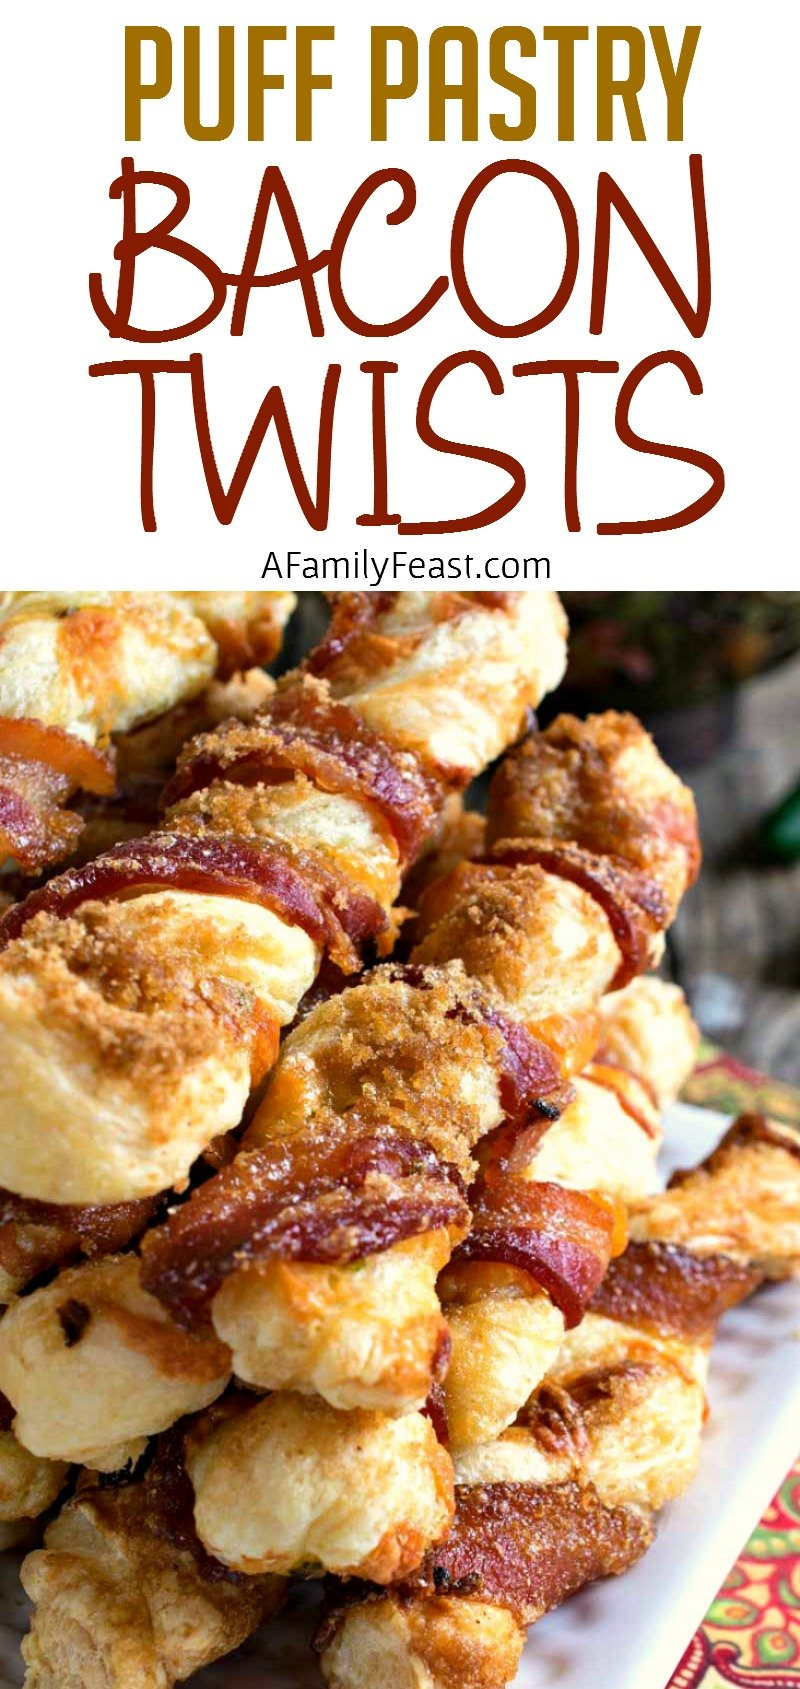 Puff Pastry Bacon Twists - Salty, sweet, cheesy and crispy - plus bacon! This snack is addictively delicious!